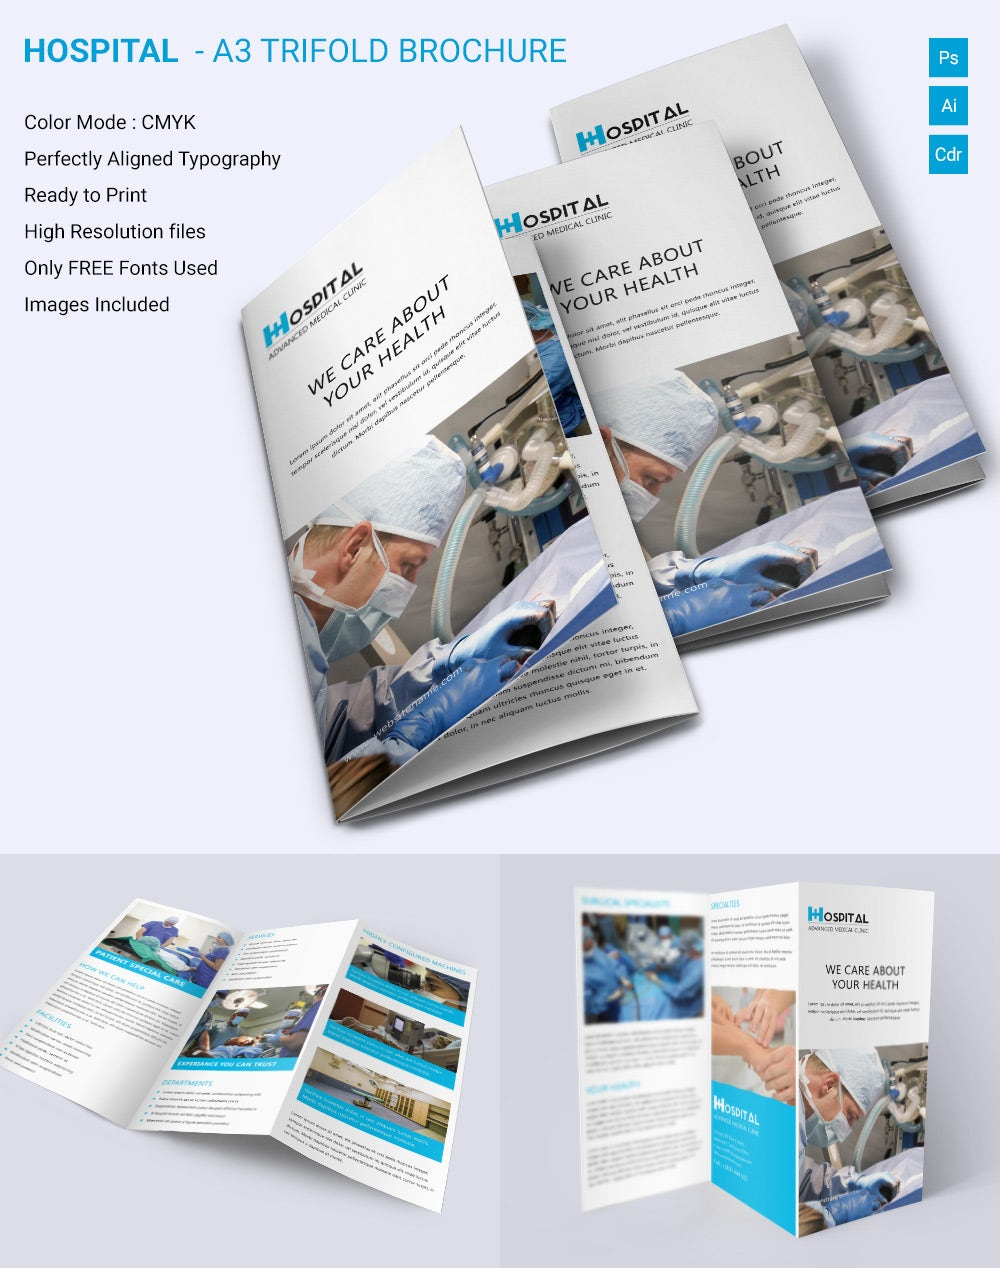 Medical brochure template 39 free psd ai vector eps for Trifold brochure template